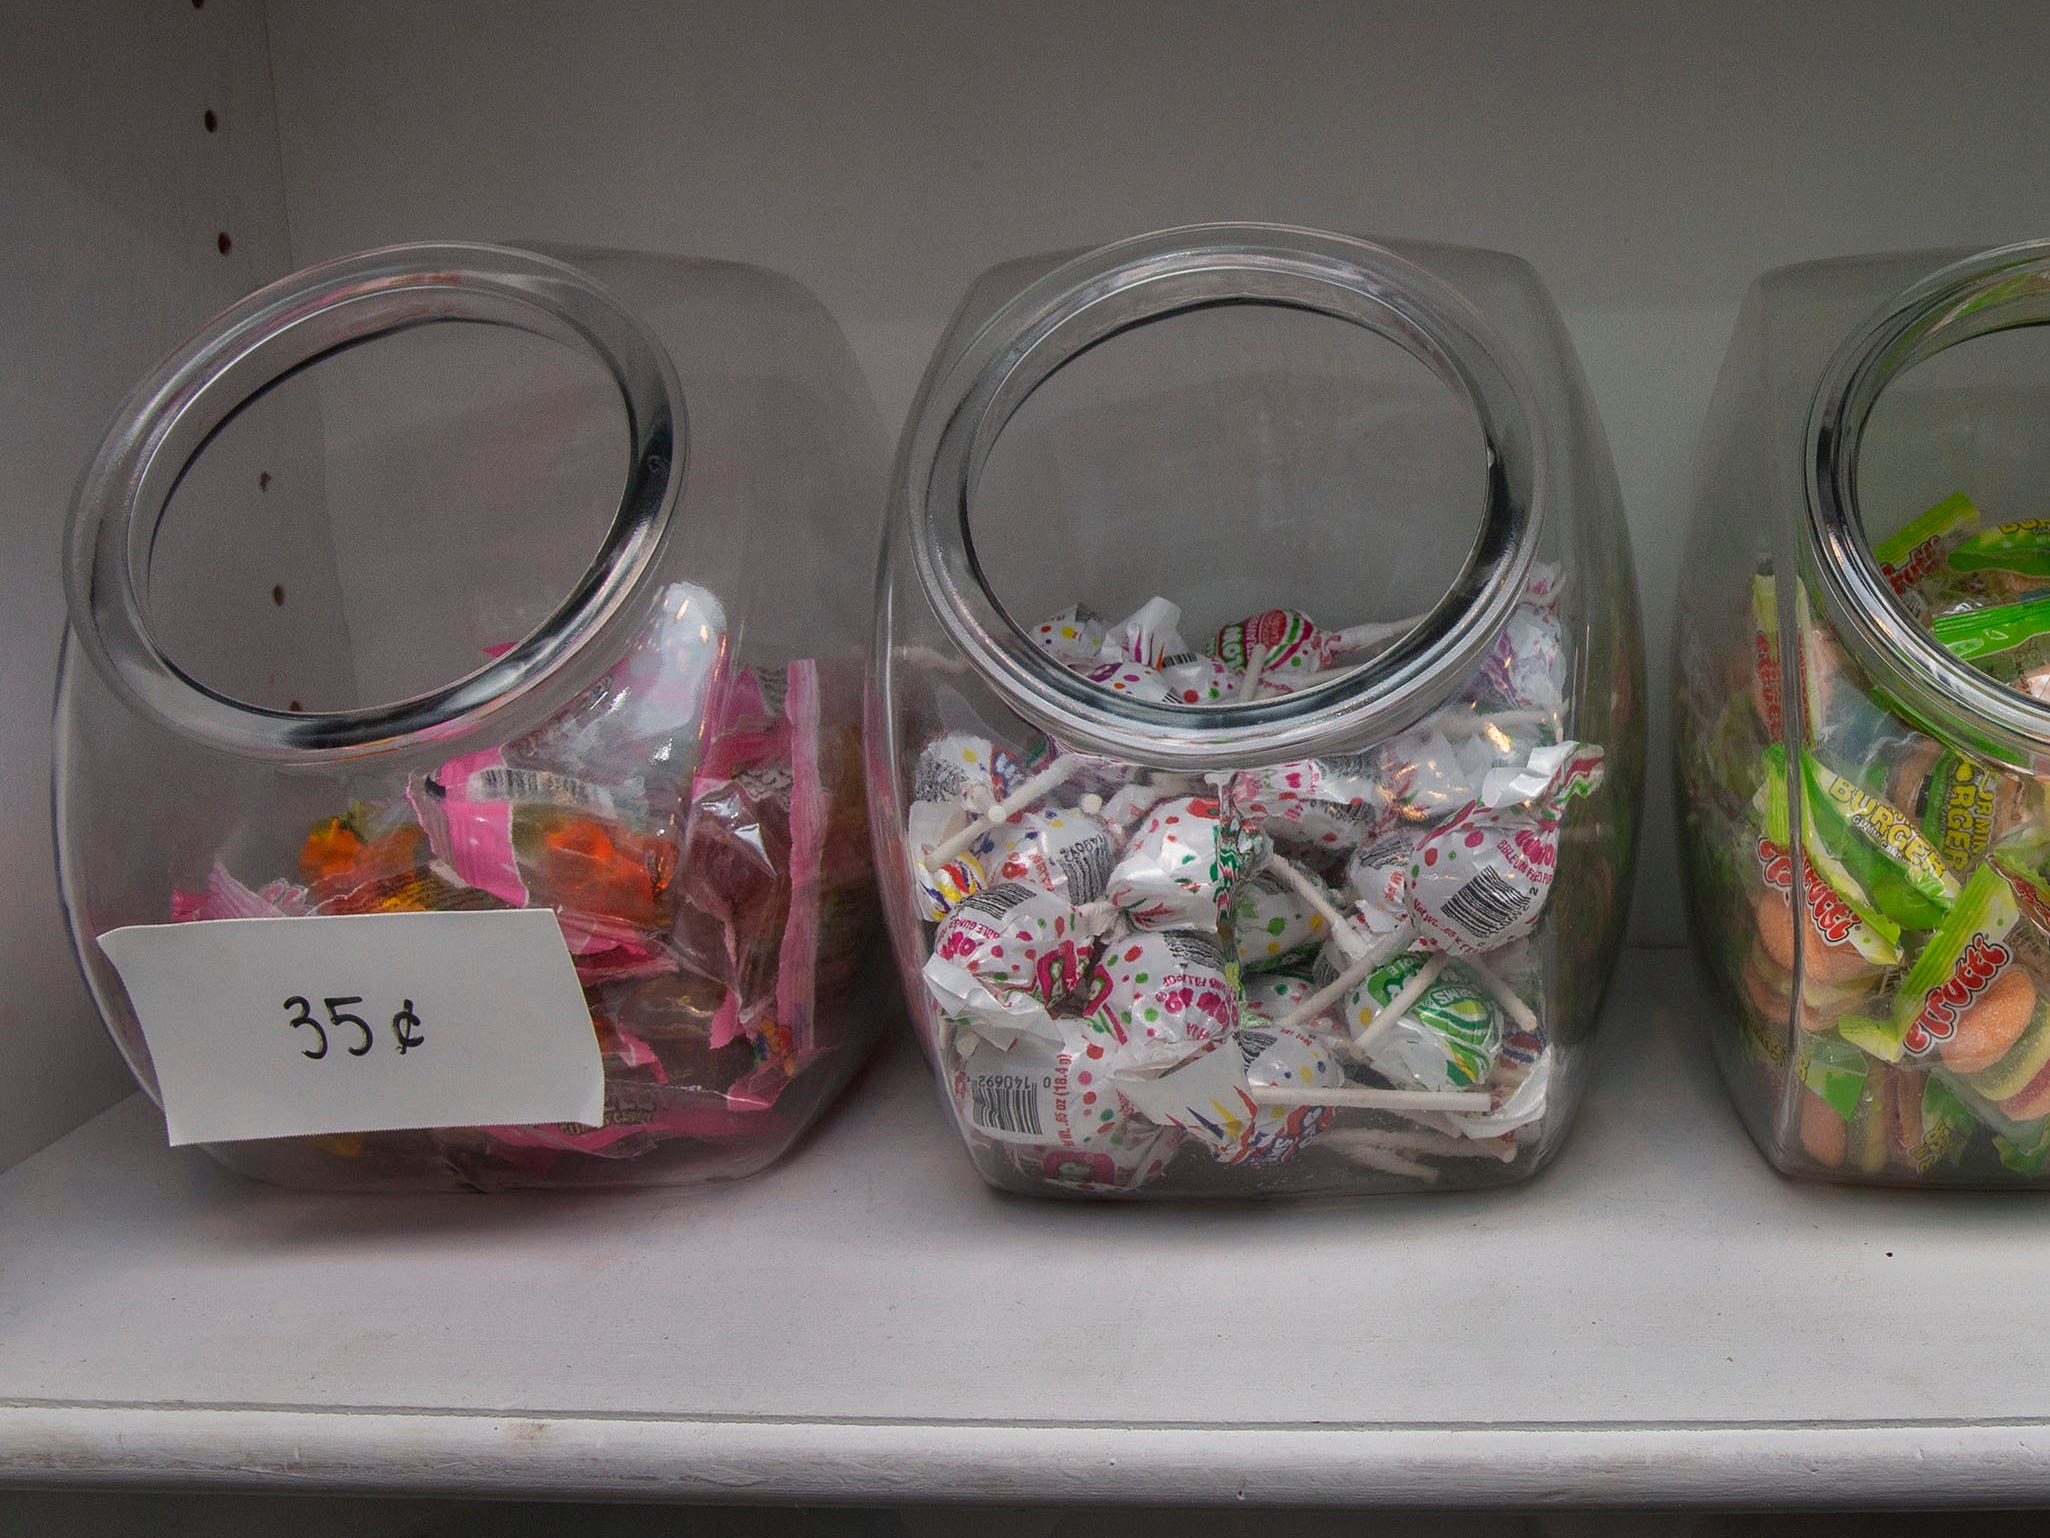 Small candies for sale at Red Bank Chocolate Shoppe, a Red Bank-based business owned by Amy Berry Healy, which provides a large range of different types of chocolate.